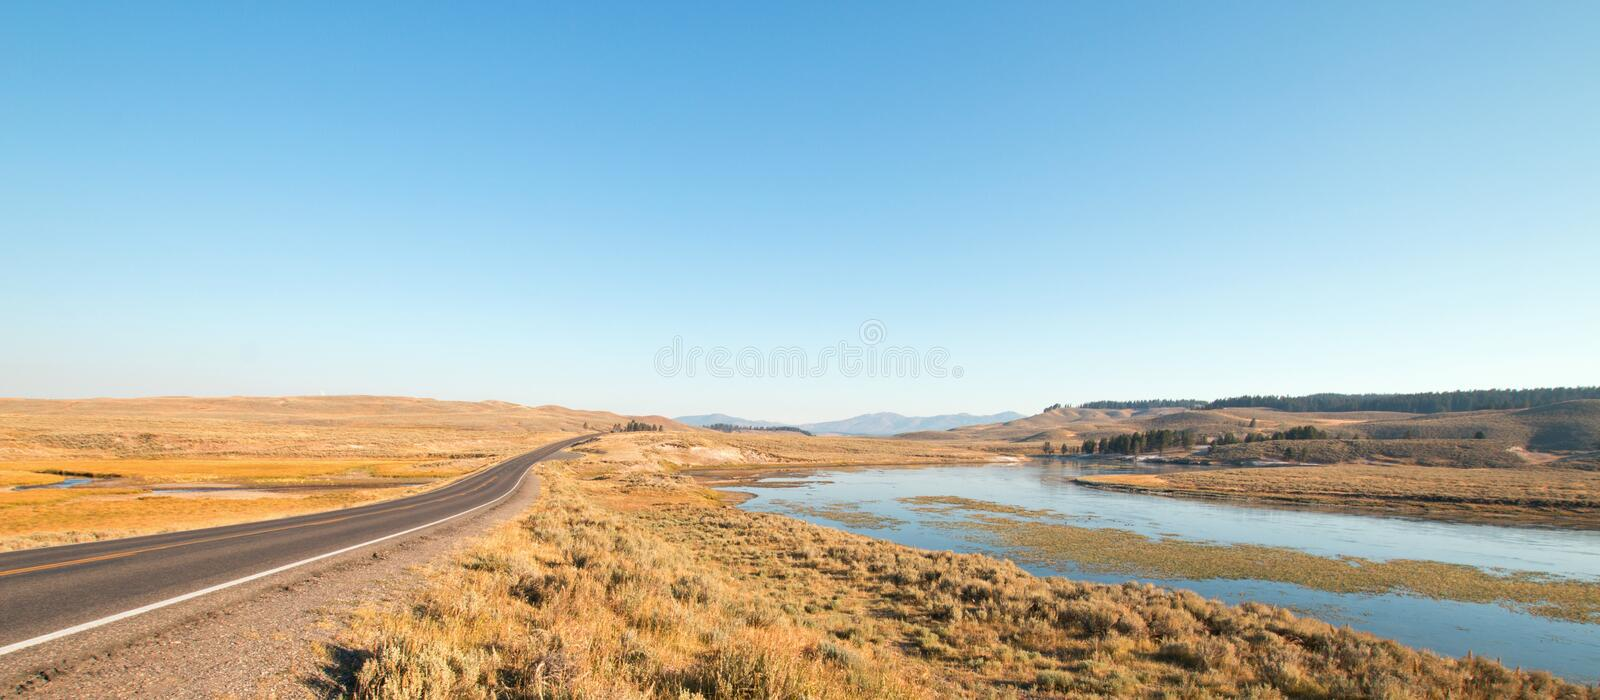 Grand Loop road next to bend in the Yellowstone river in the Hayden valley in Yellowstone National Park in Wyoming royalty free stock images